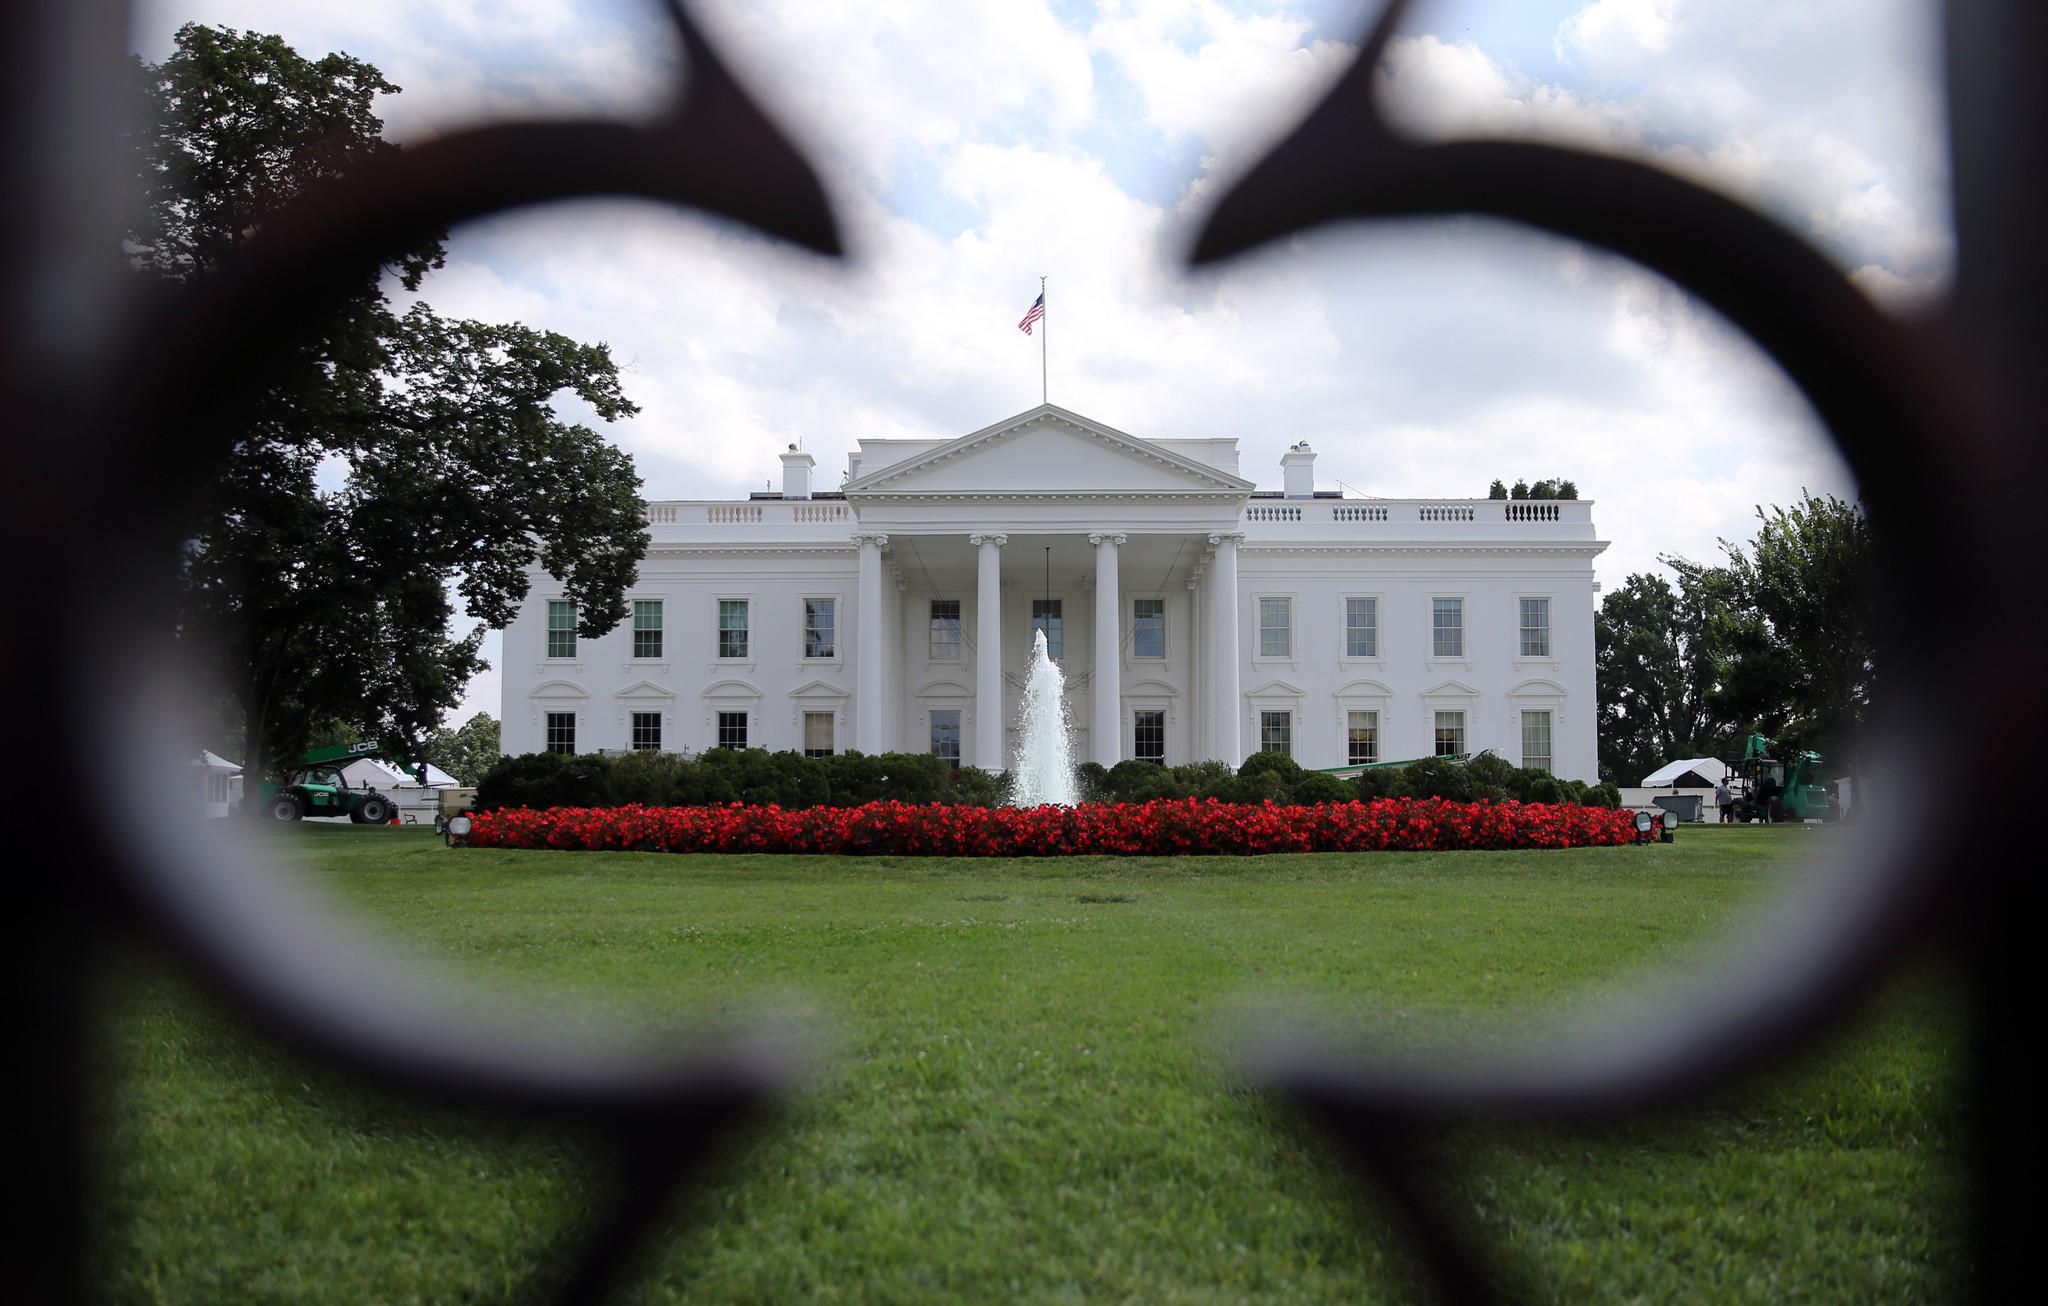 The north side of the White House pictured on Aug. 13, 2013.